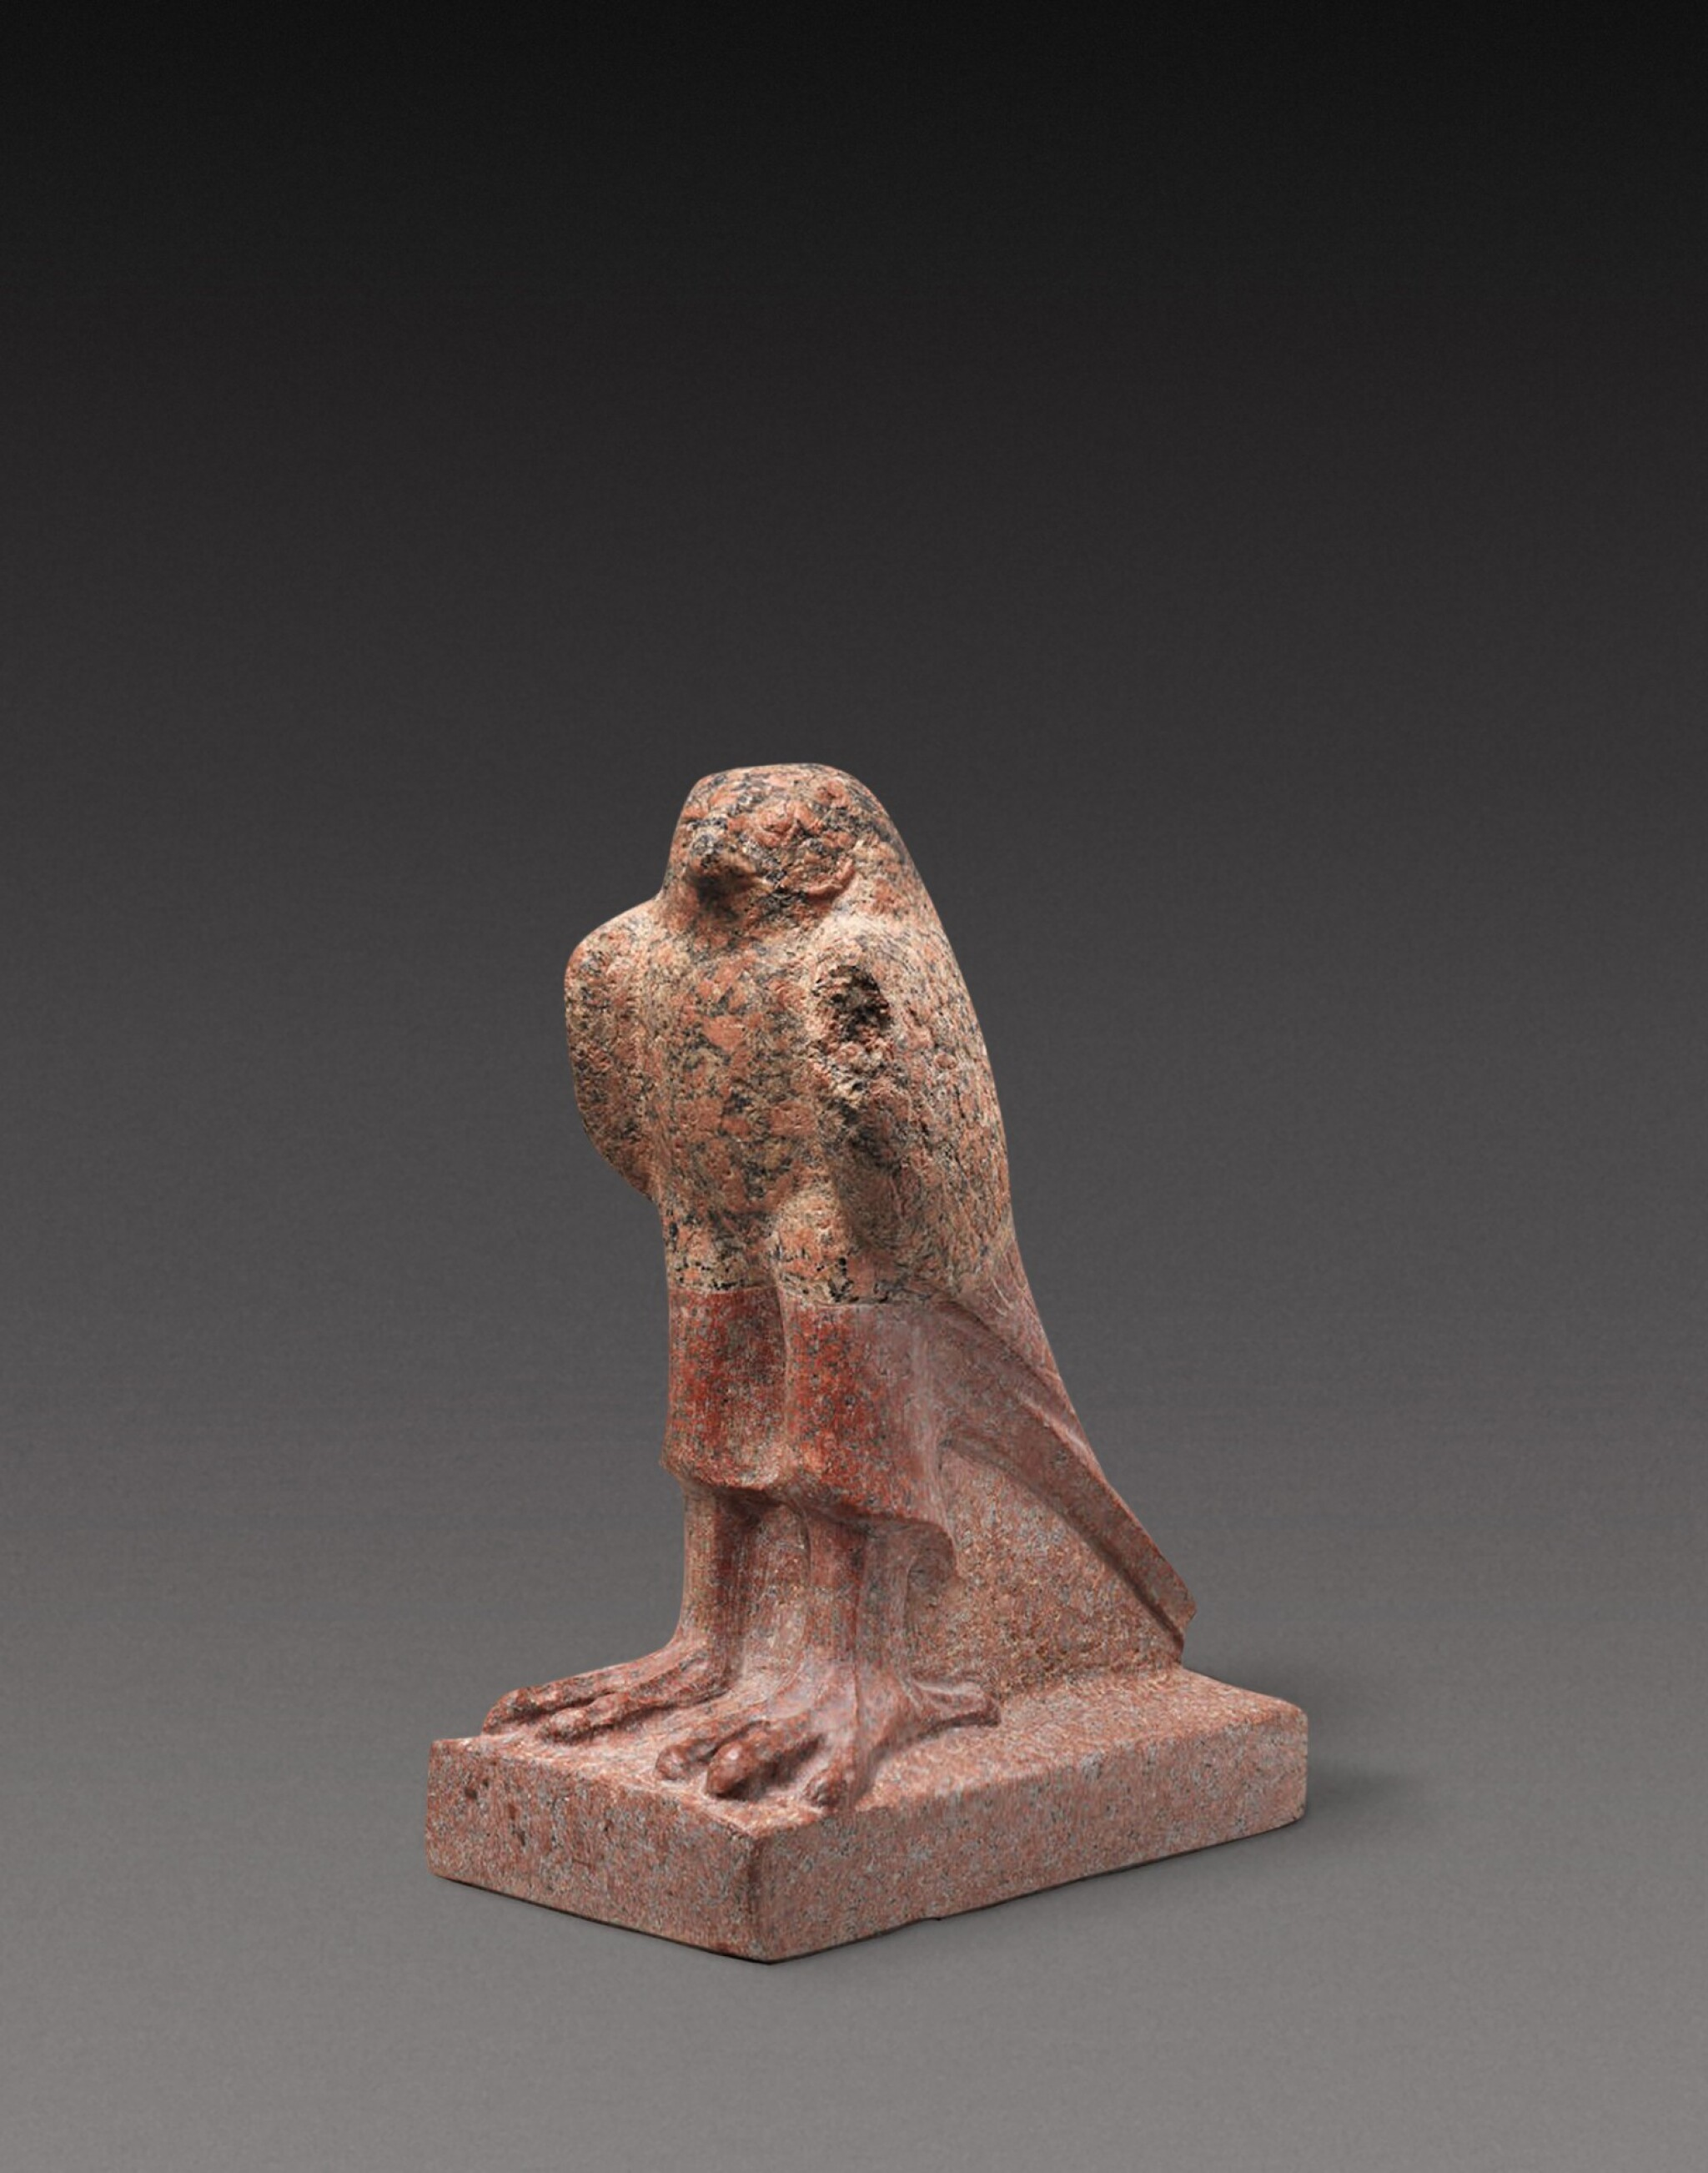 View 1 of Lot 39. A Fragmentary Egyptian Red Granite Figure of the Horus Falcon, Ptolemaic Period, 305-30 B.C..